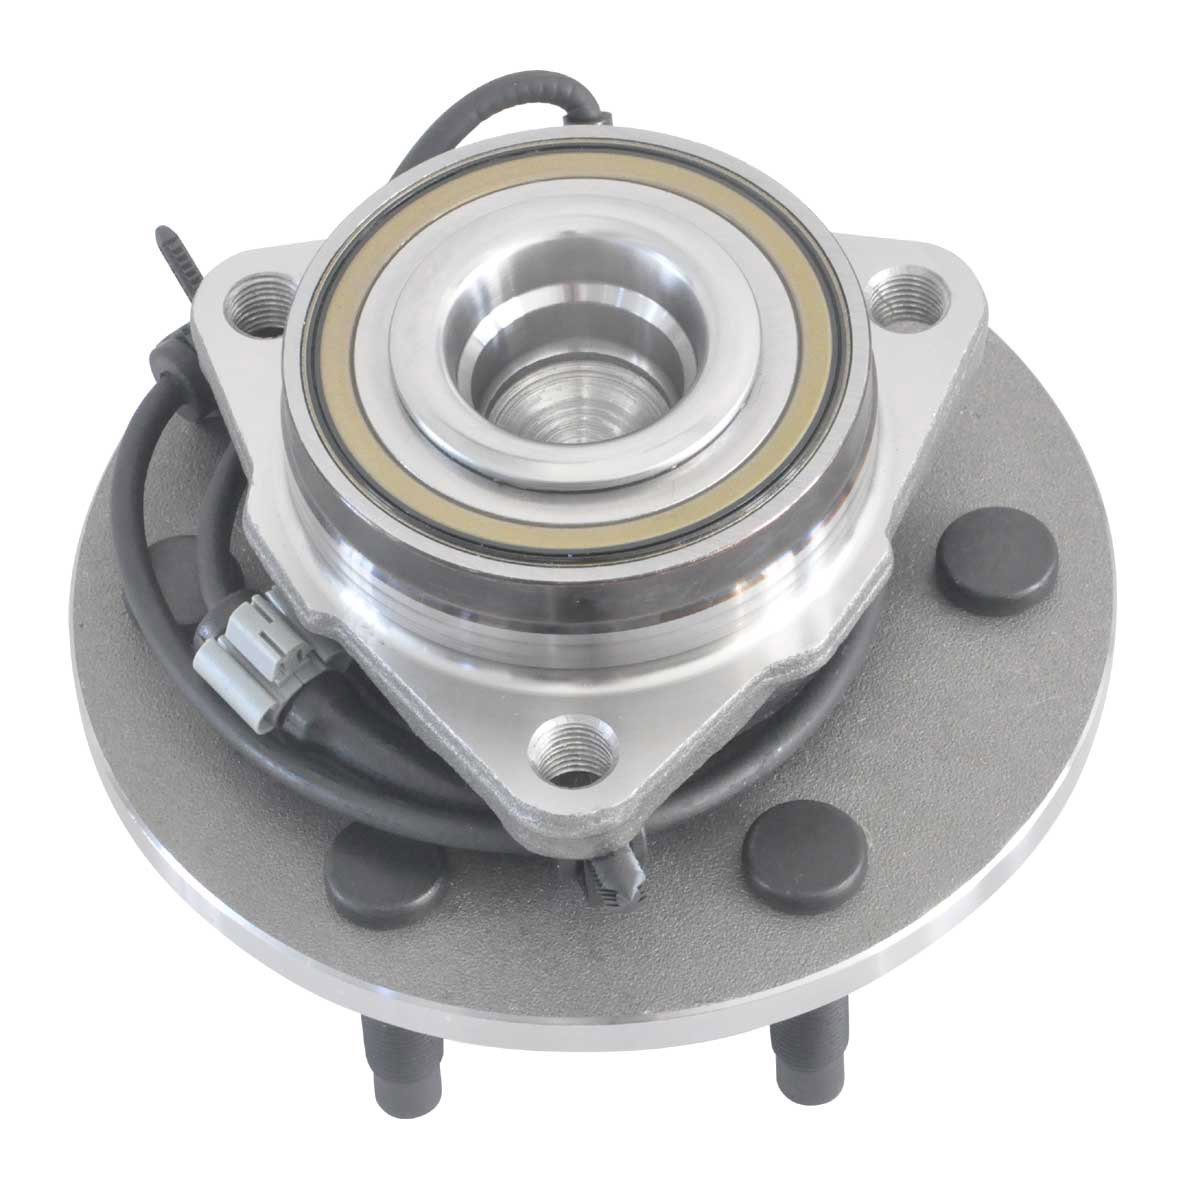 2WD Only DRIVESTAR 515054 New Front Wheel Hub & Bearing for Chevy GMC Cadillac 6 Lug RWD